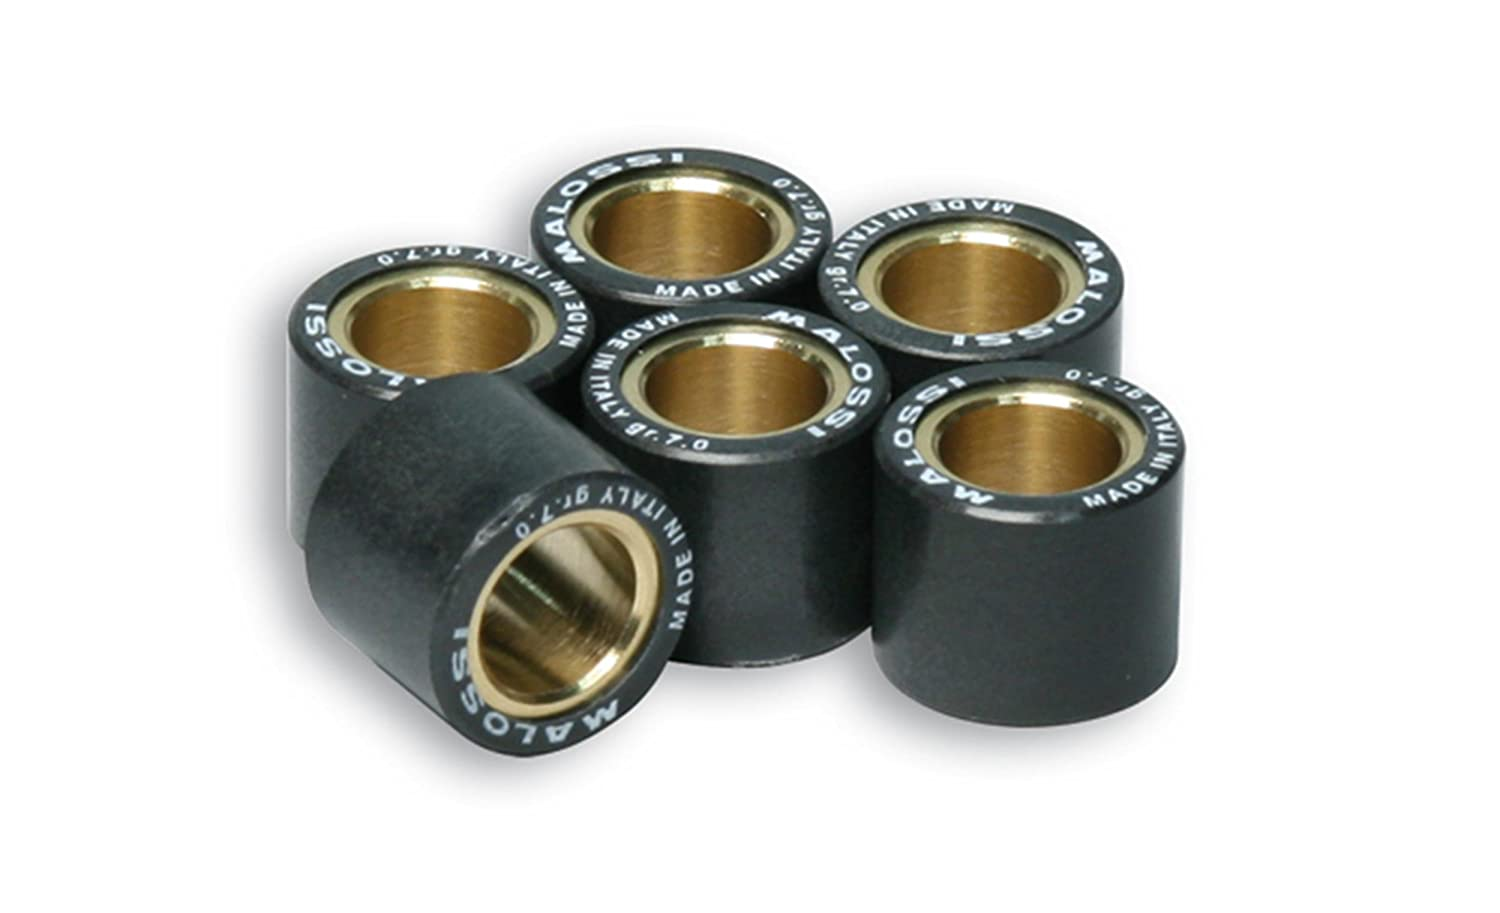 Malossi vario weights HT - 16x13mm - 4.7g